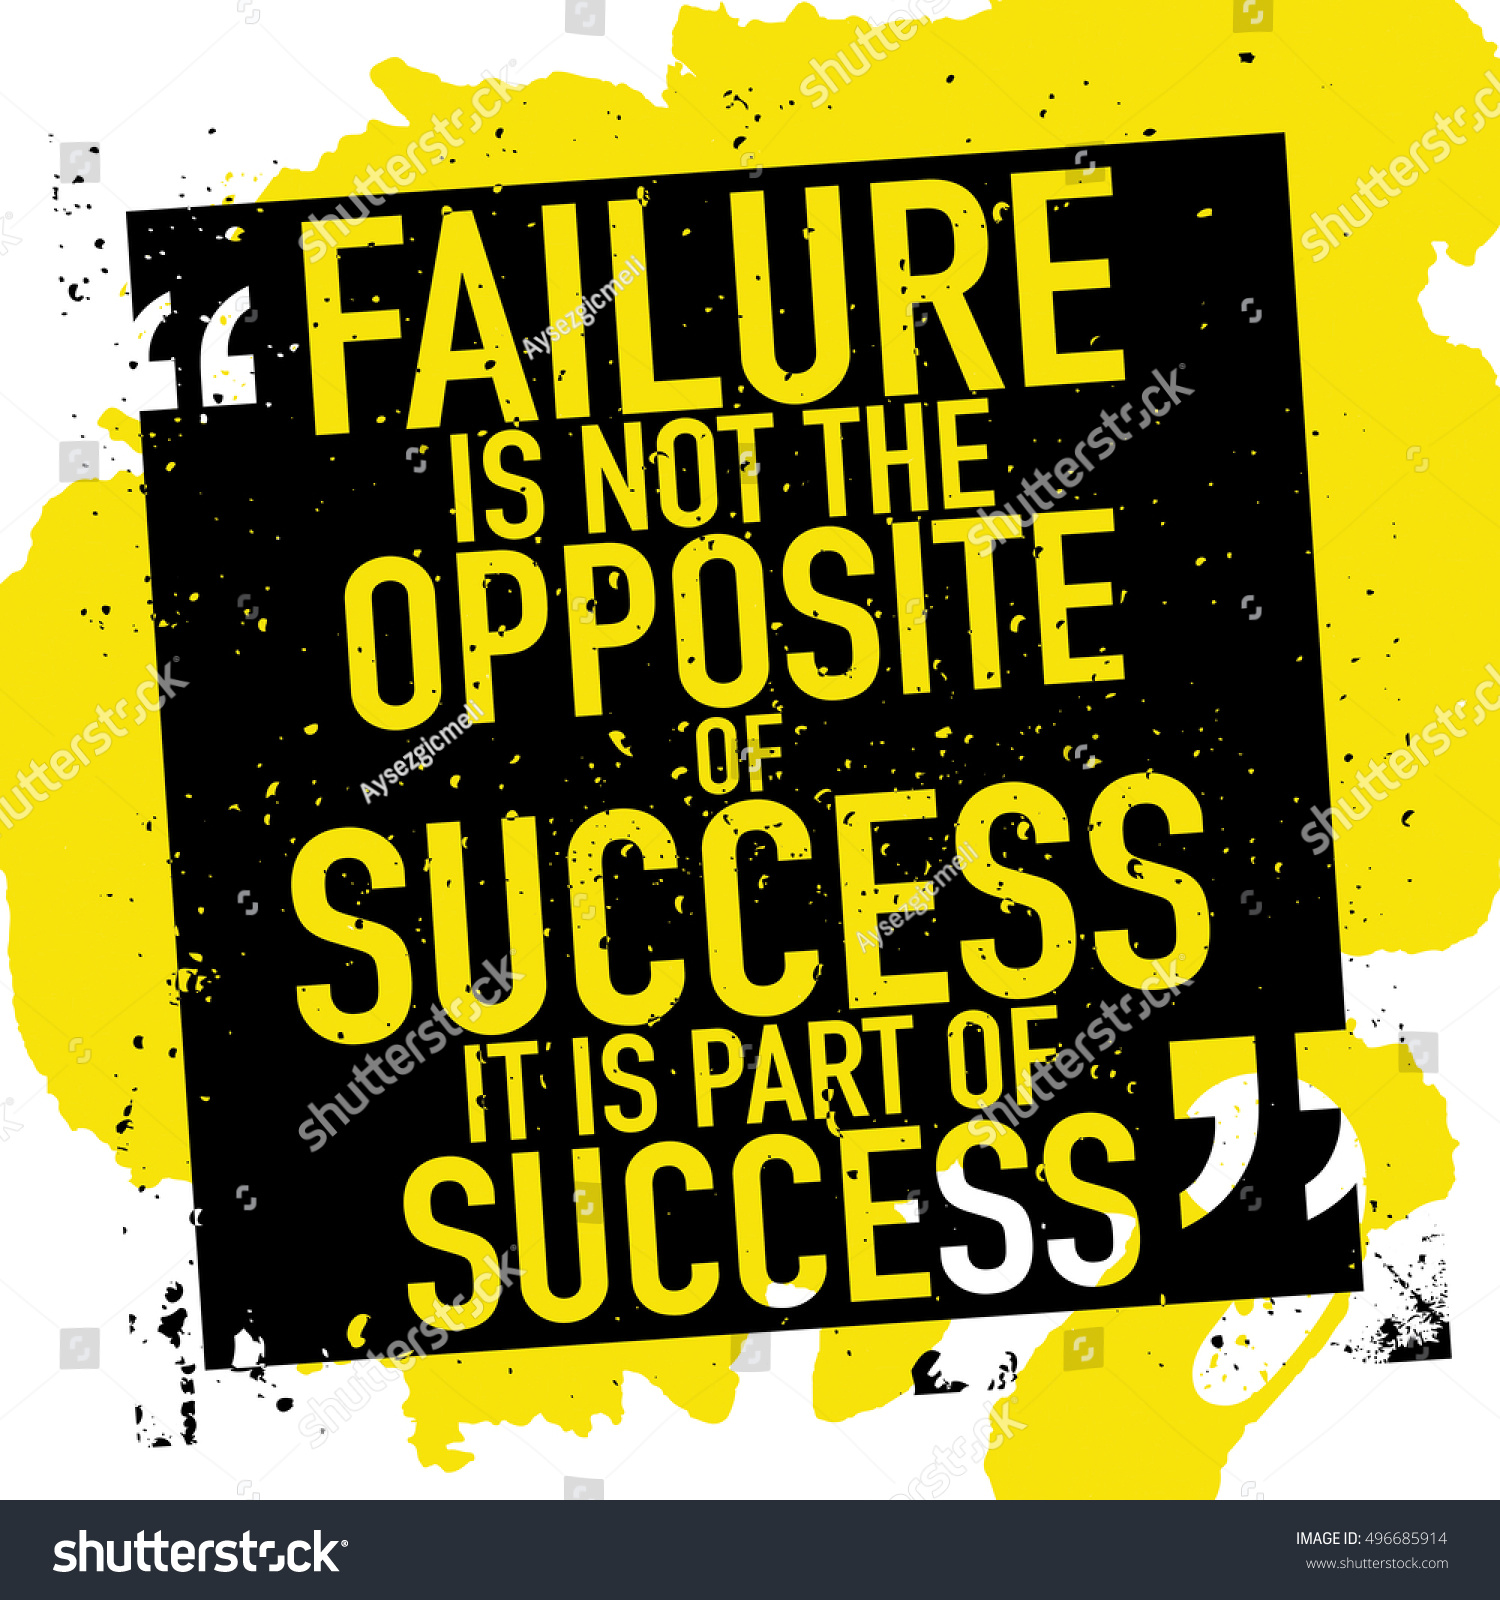 Inspirational Quotes About Failure: Success Concept Quote Poster Design Failure Stock Vector